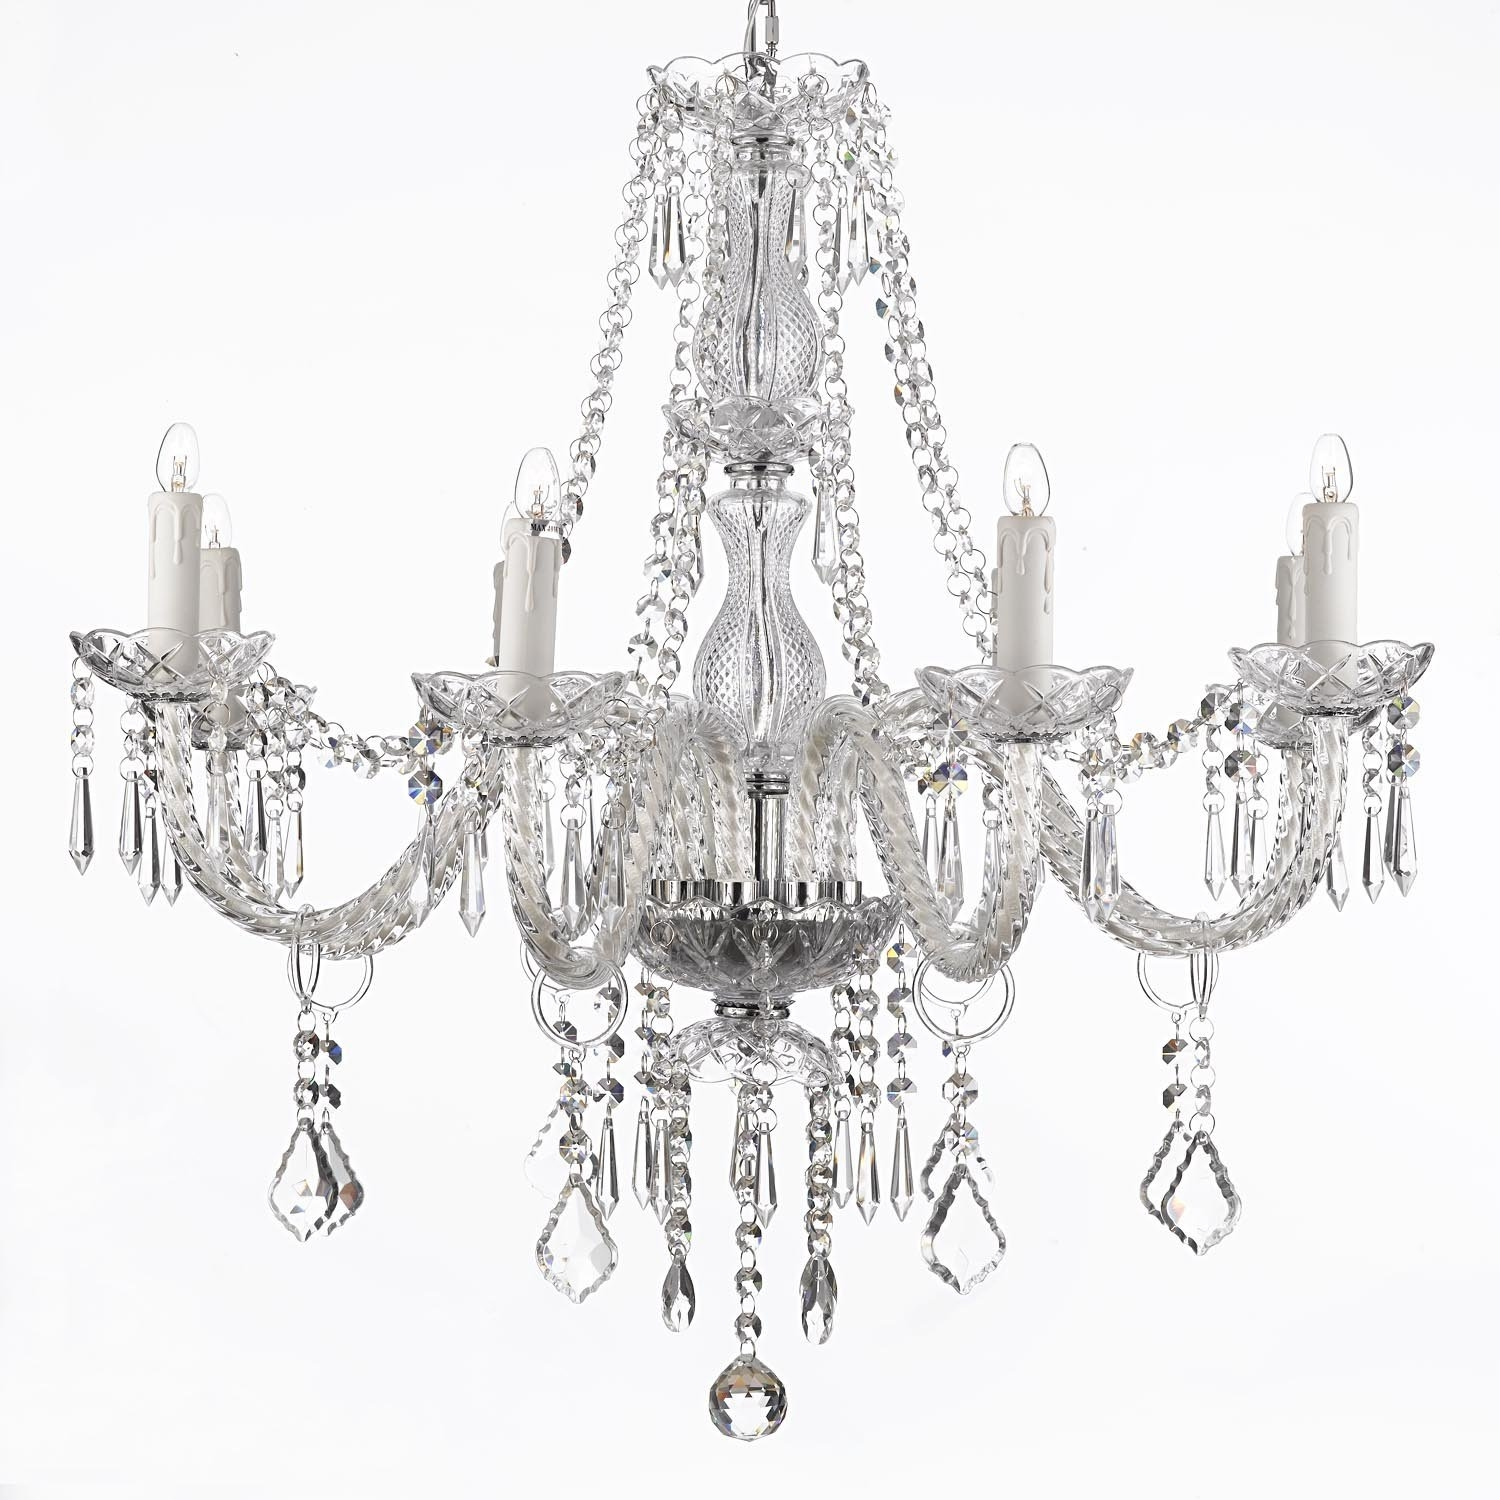 Crystal Chandelier Lighting 28ht X 28wd 8 Lights Fixture Pendant In Cheap Faux Crystal Chandeliers (Image 11 of 25)